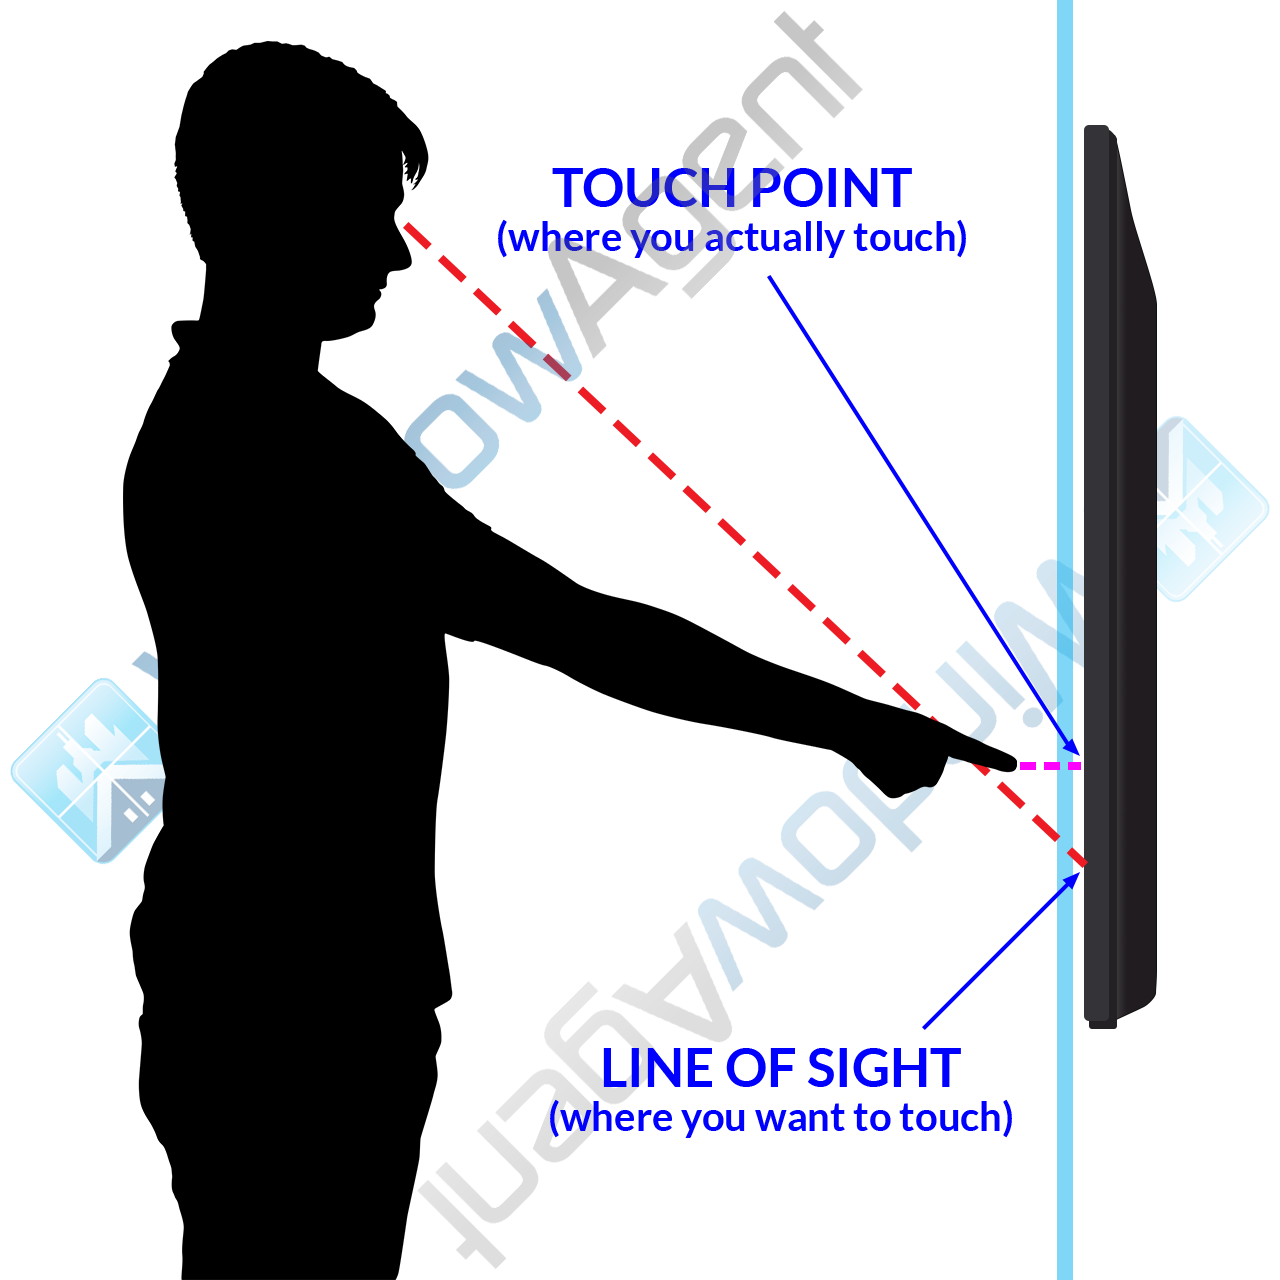 parallax diagram